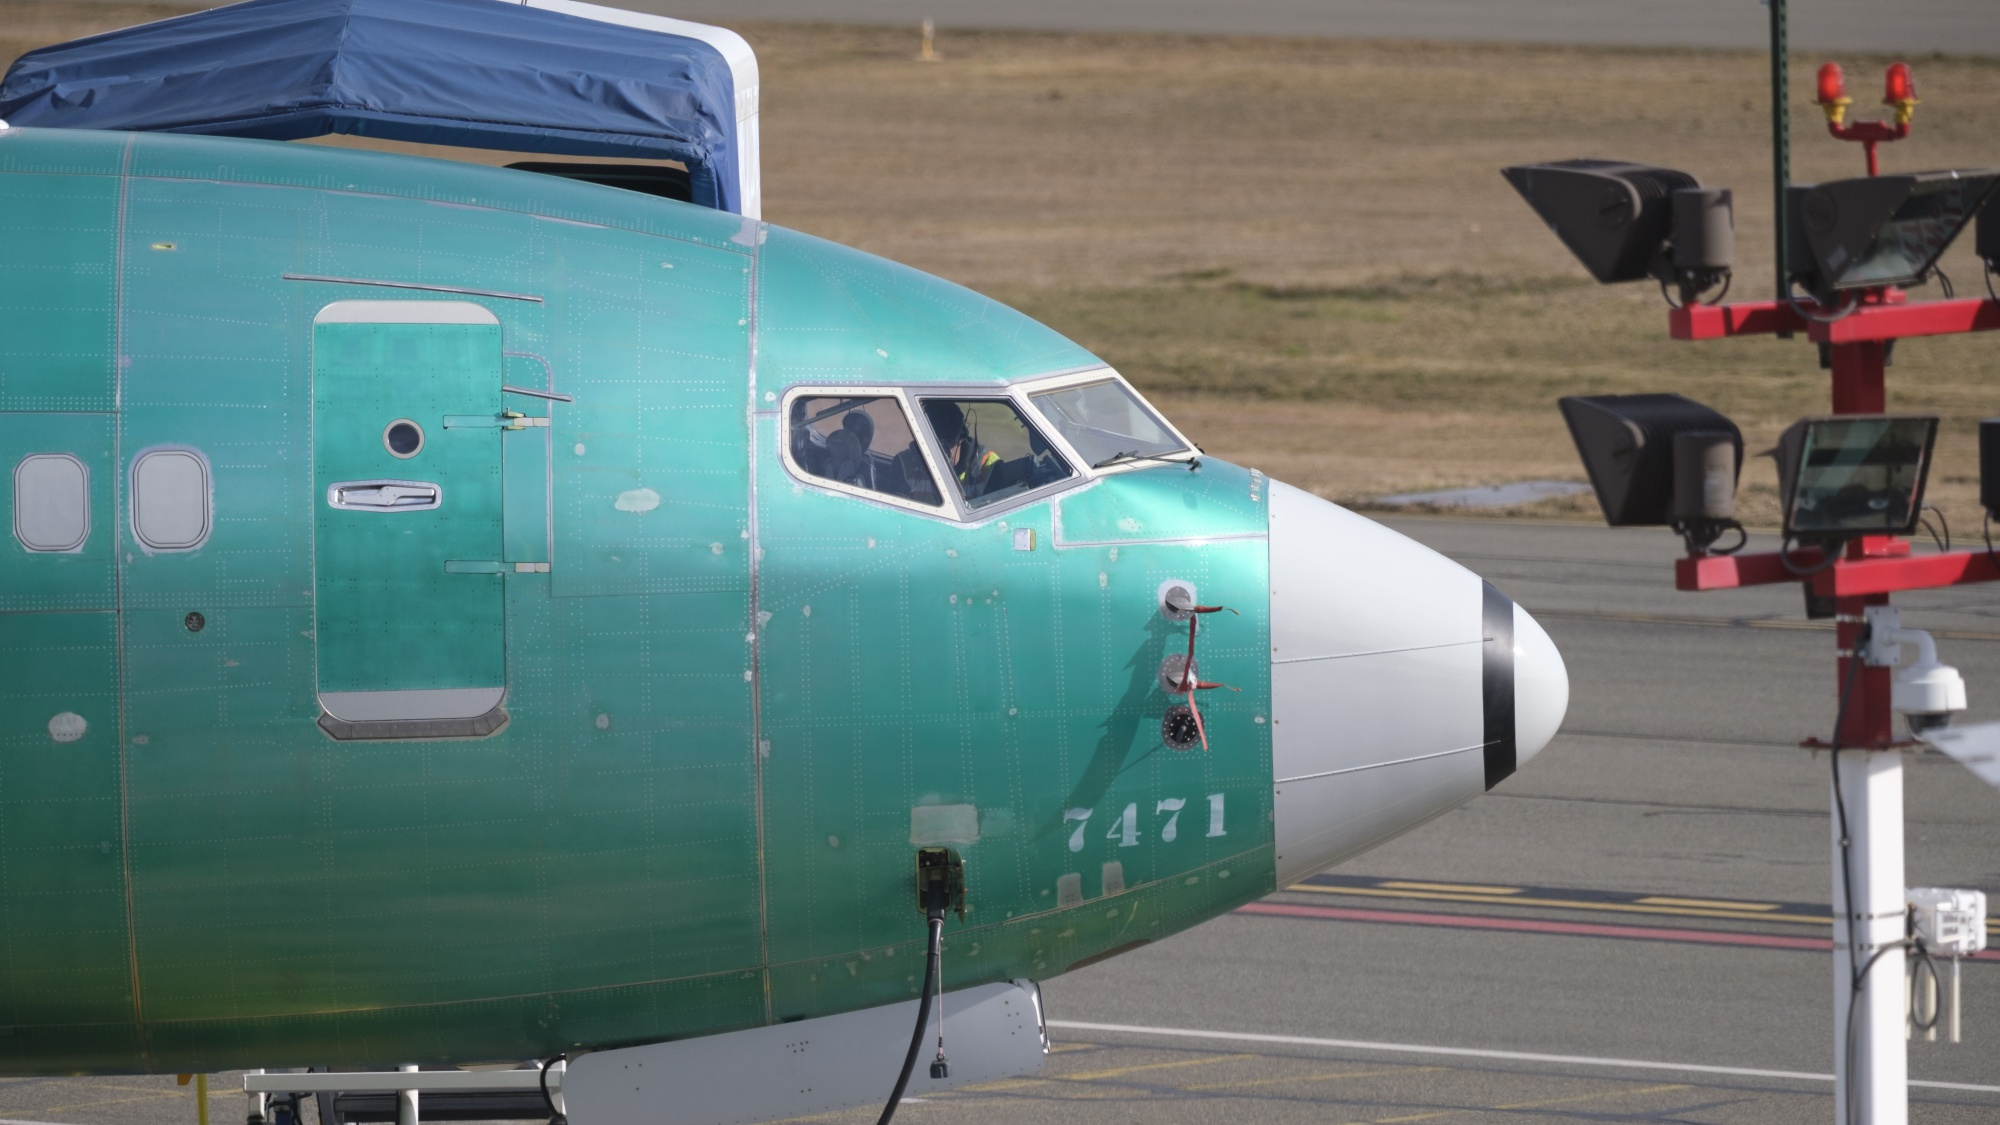 When Will Boeing 737 Max Fly Again and More Questions: QuickTake